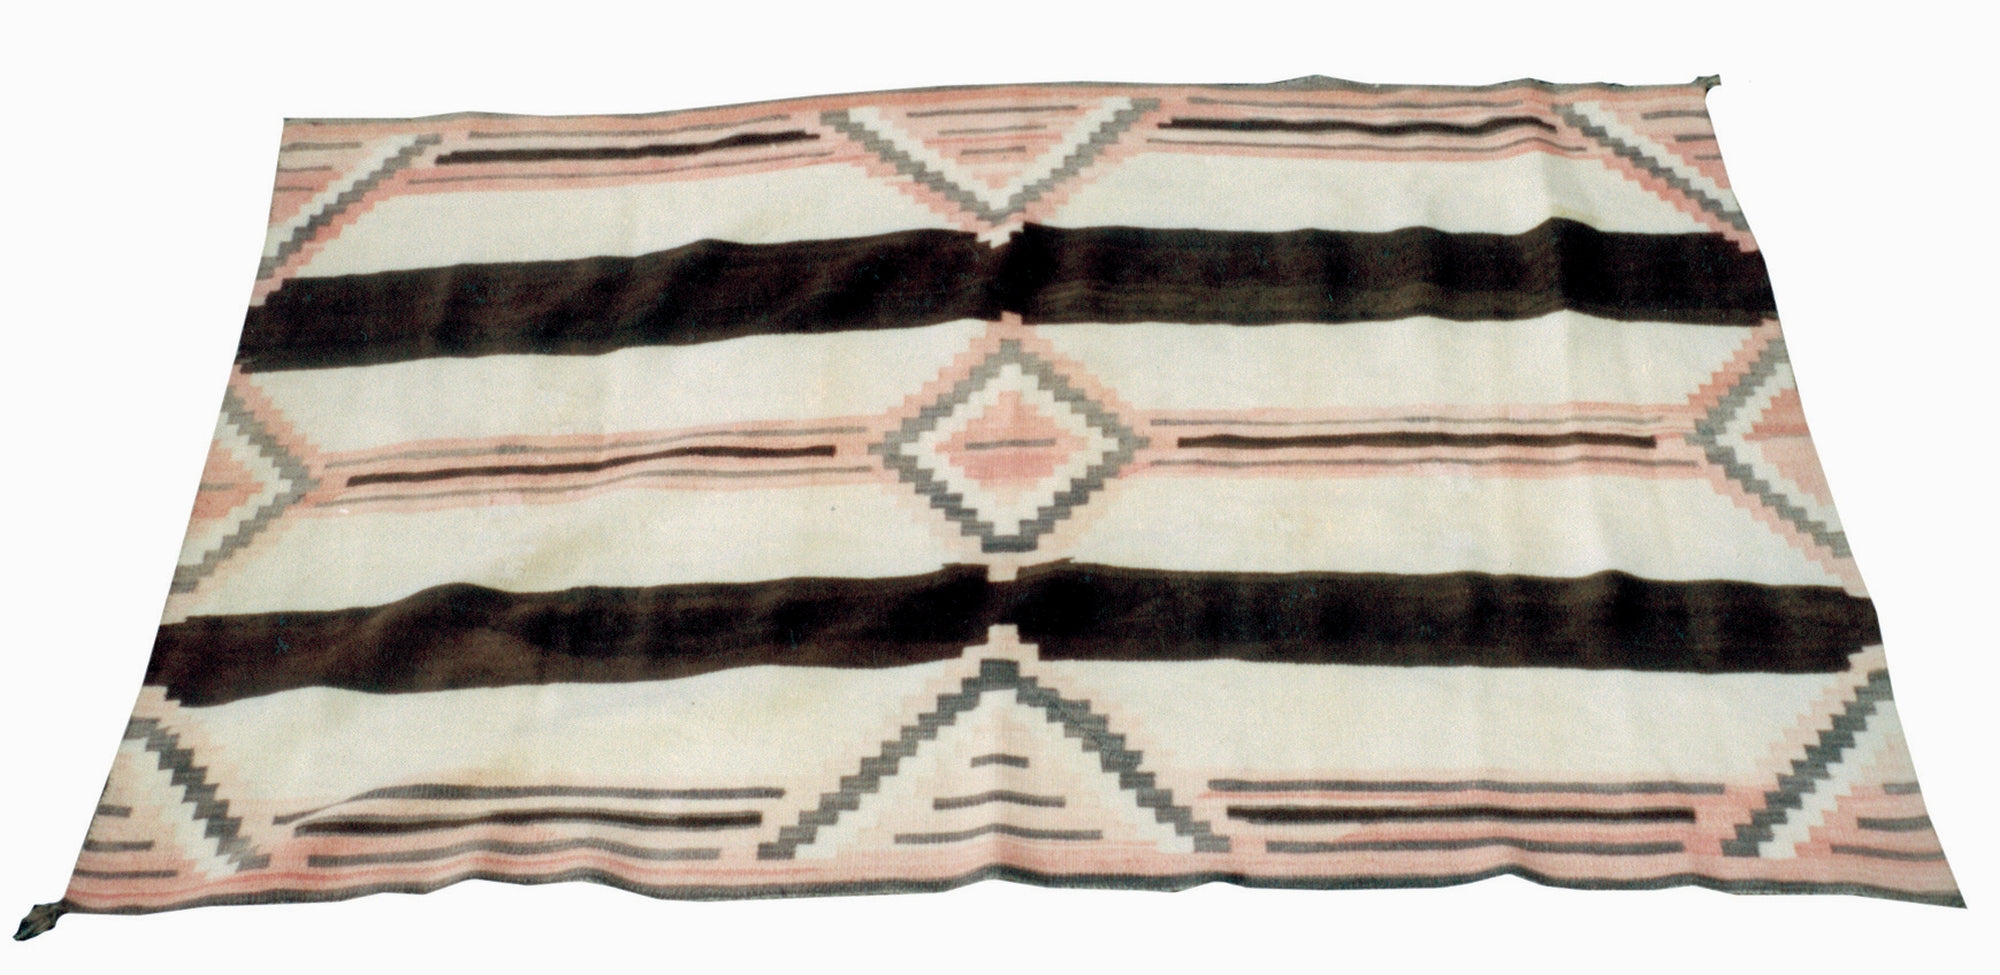 Chief's Blanket 4' to 6', blankets, chiefs, navajo, weavings